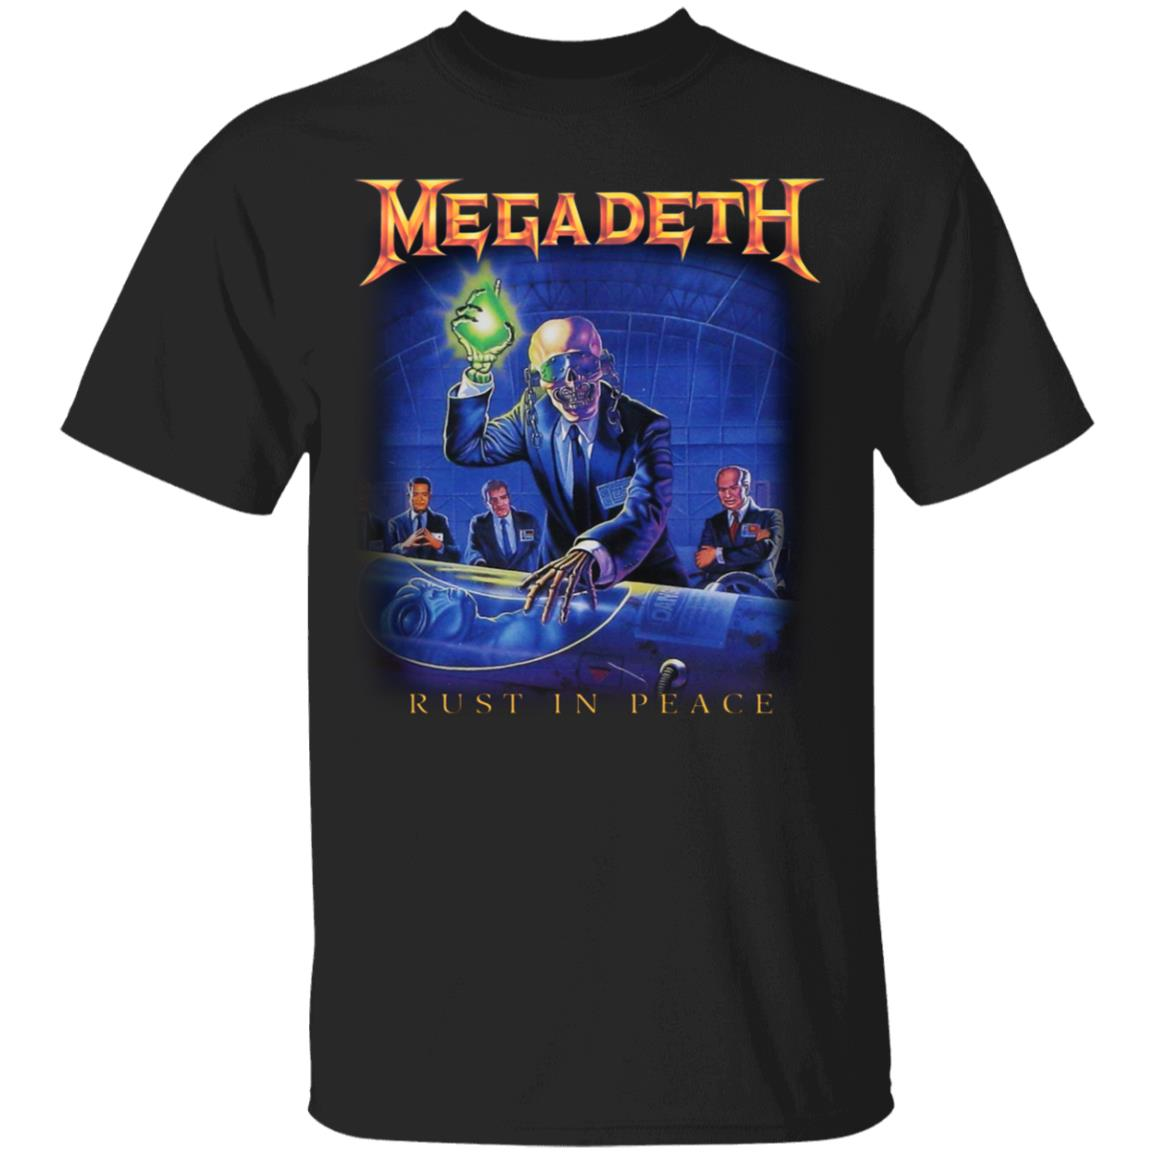 Megadeth Rust In Peace T-Shirts, Hoodies